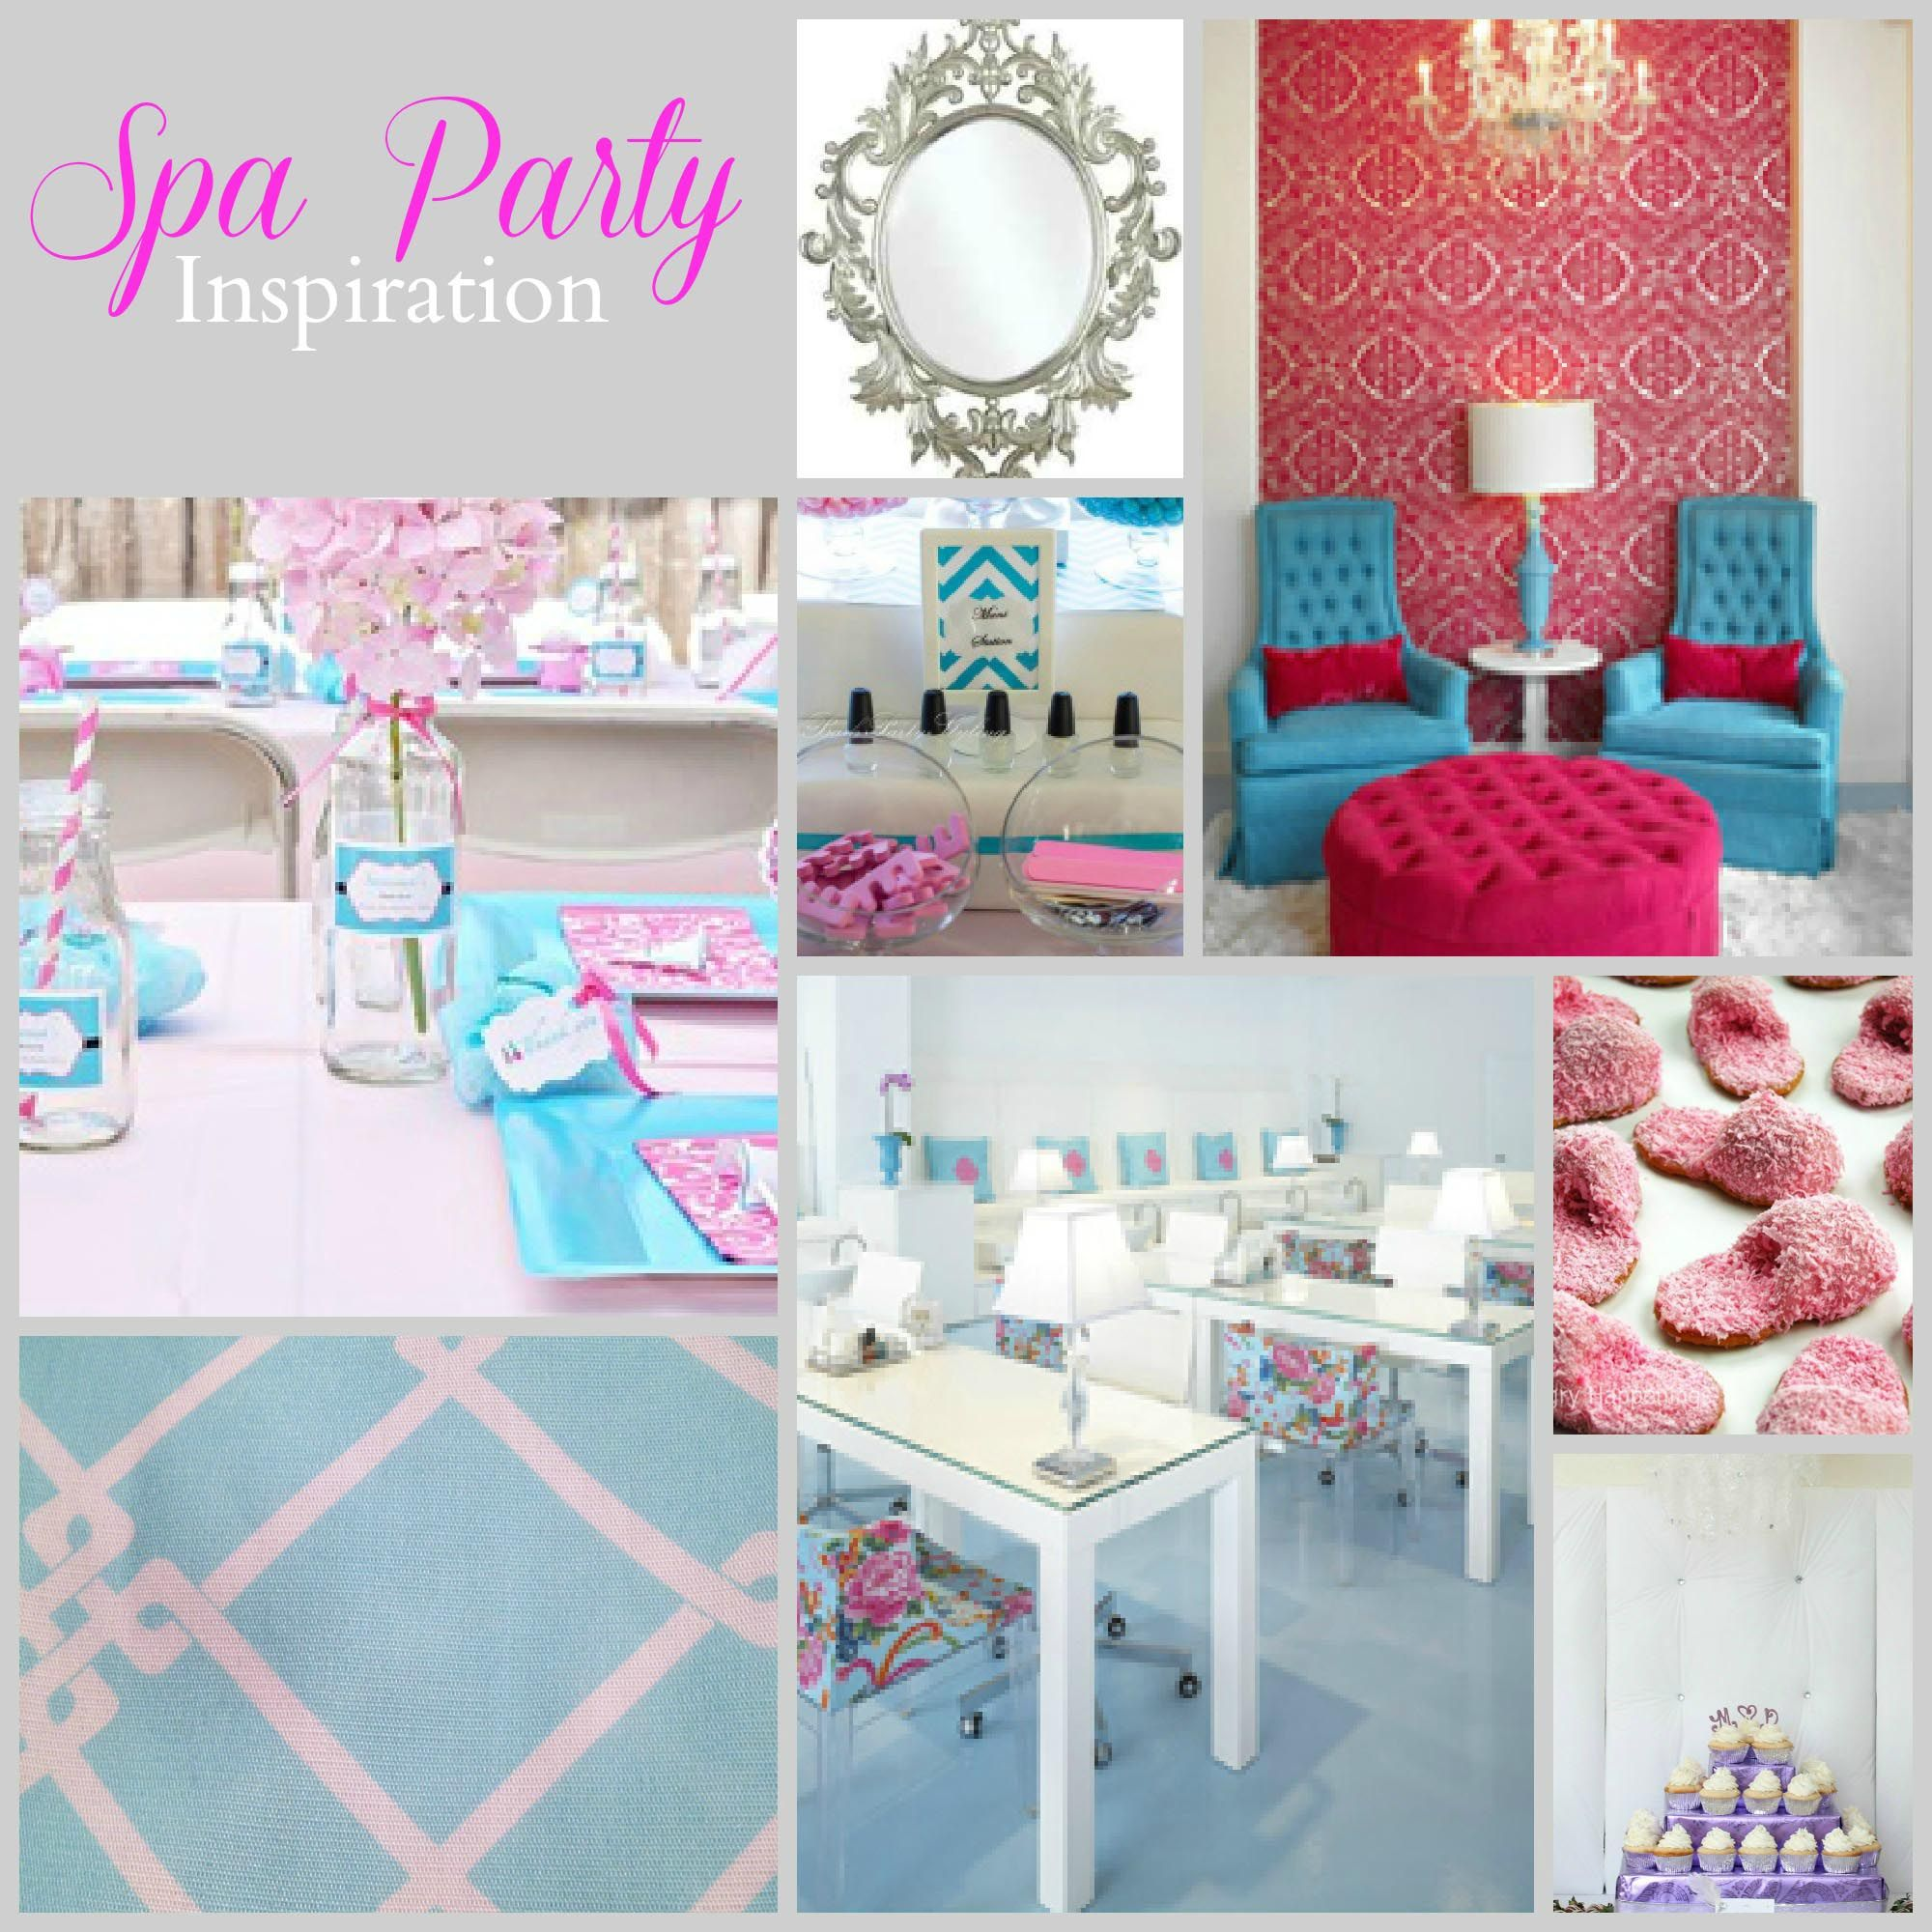 Little Girls Spa Party Home Party Ideas – Little Girl Spa Party Invitations